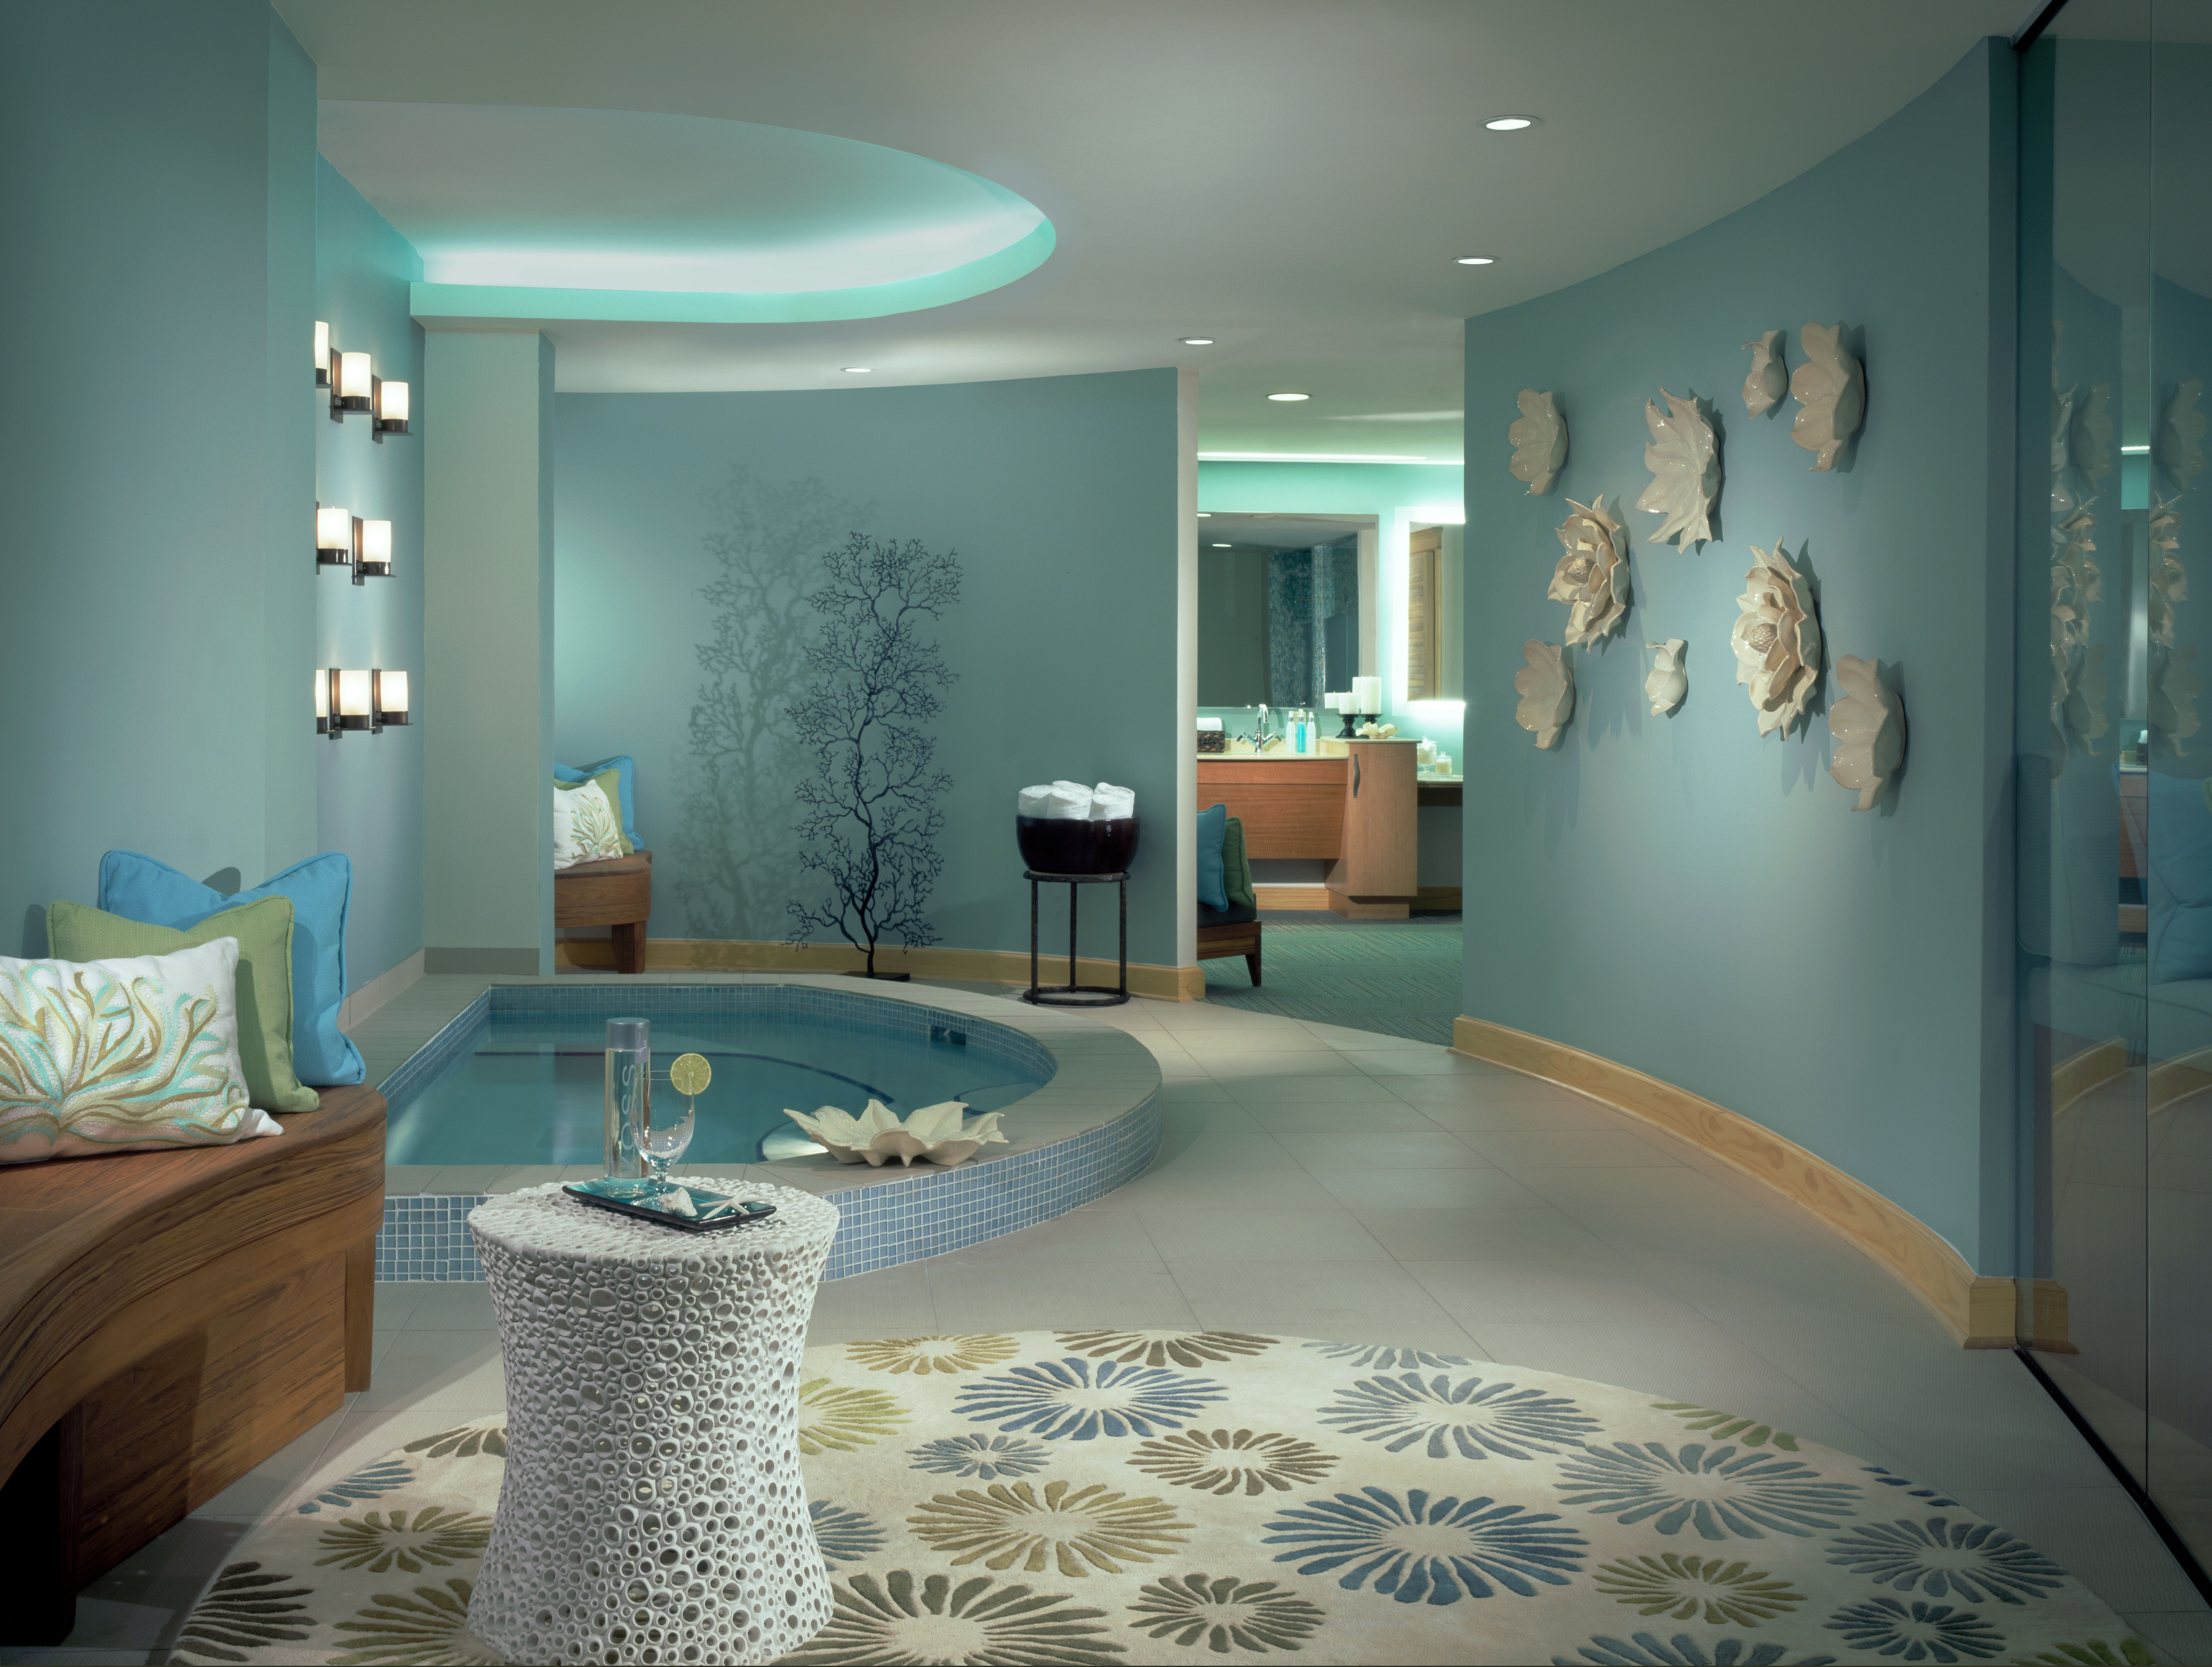 Spa rooms 25607539 h1 spa ladies locker room lanscape for Bathroom ideas spa themed